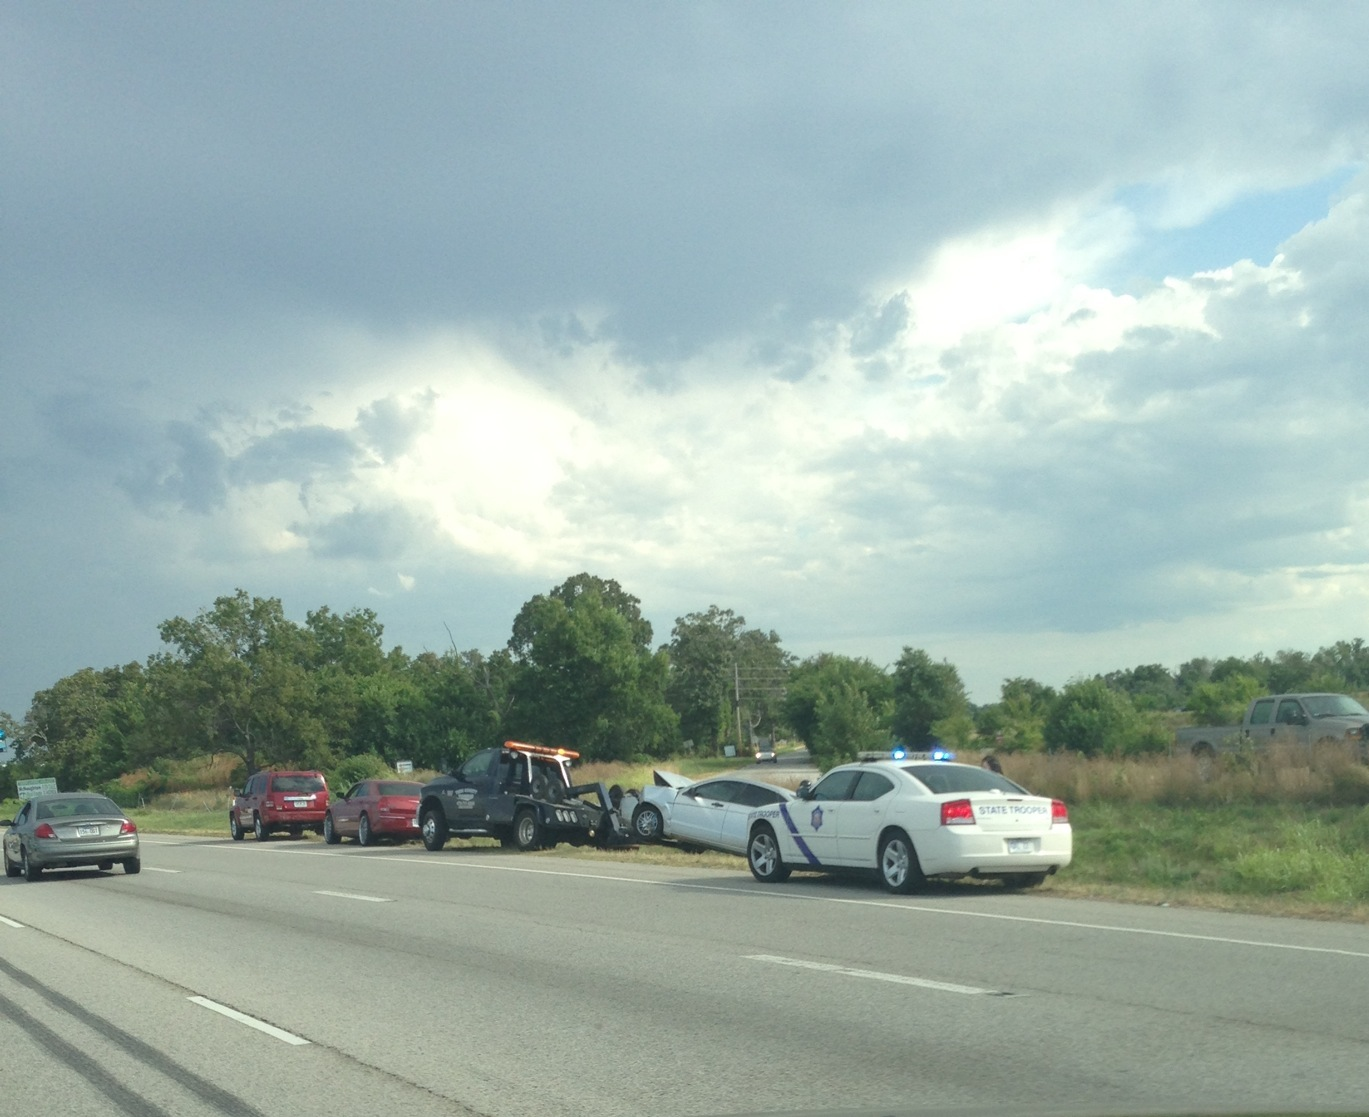 Accident near Pleasant Grove Road from Jeanette Poole